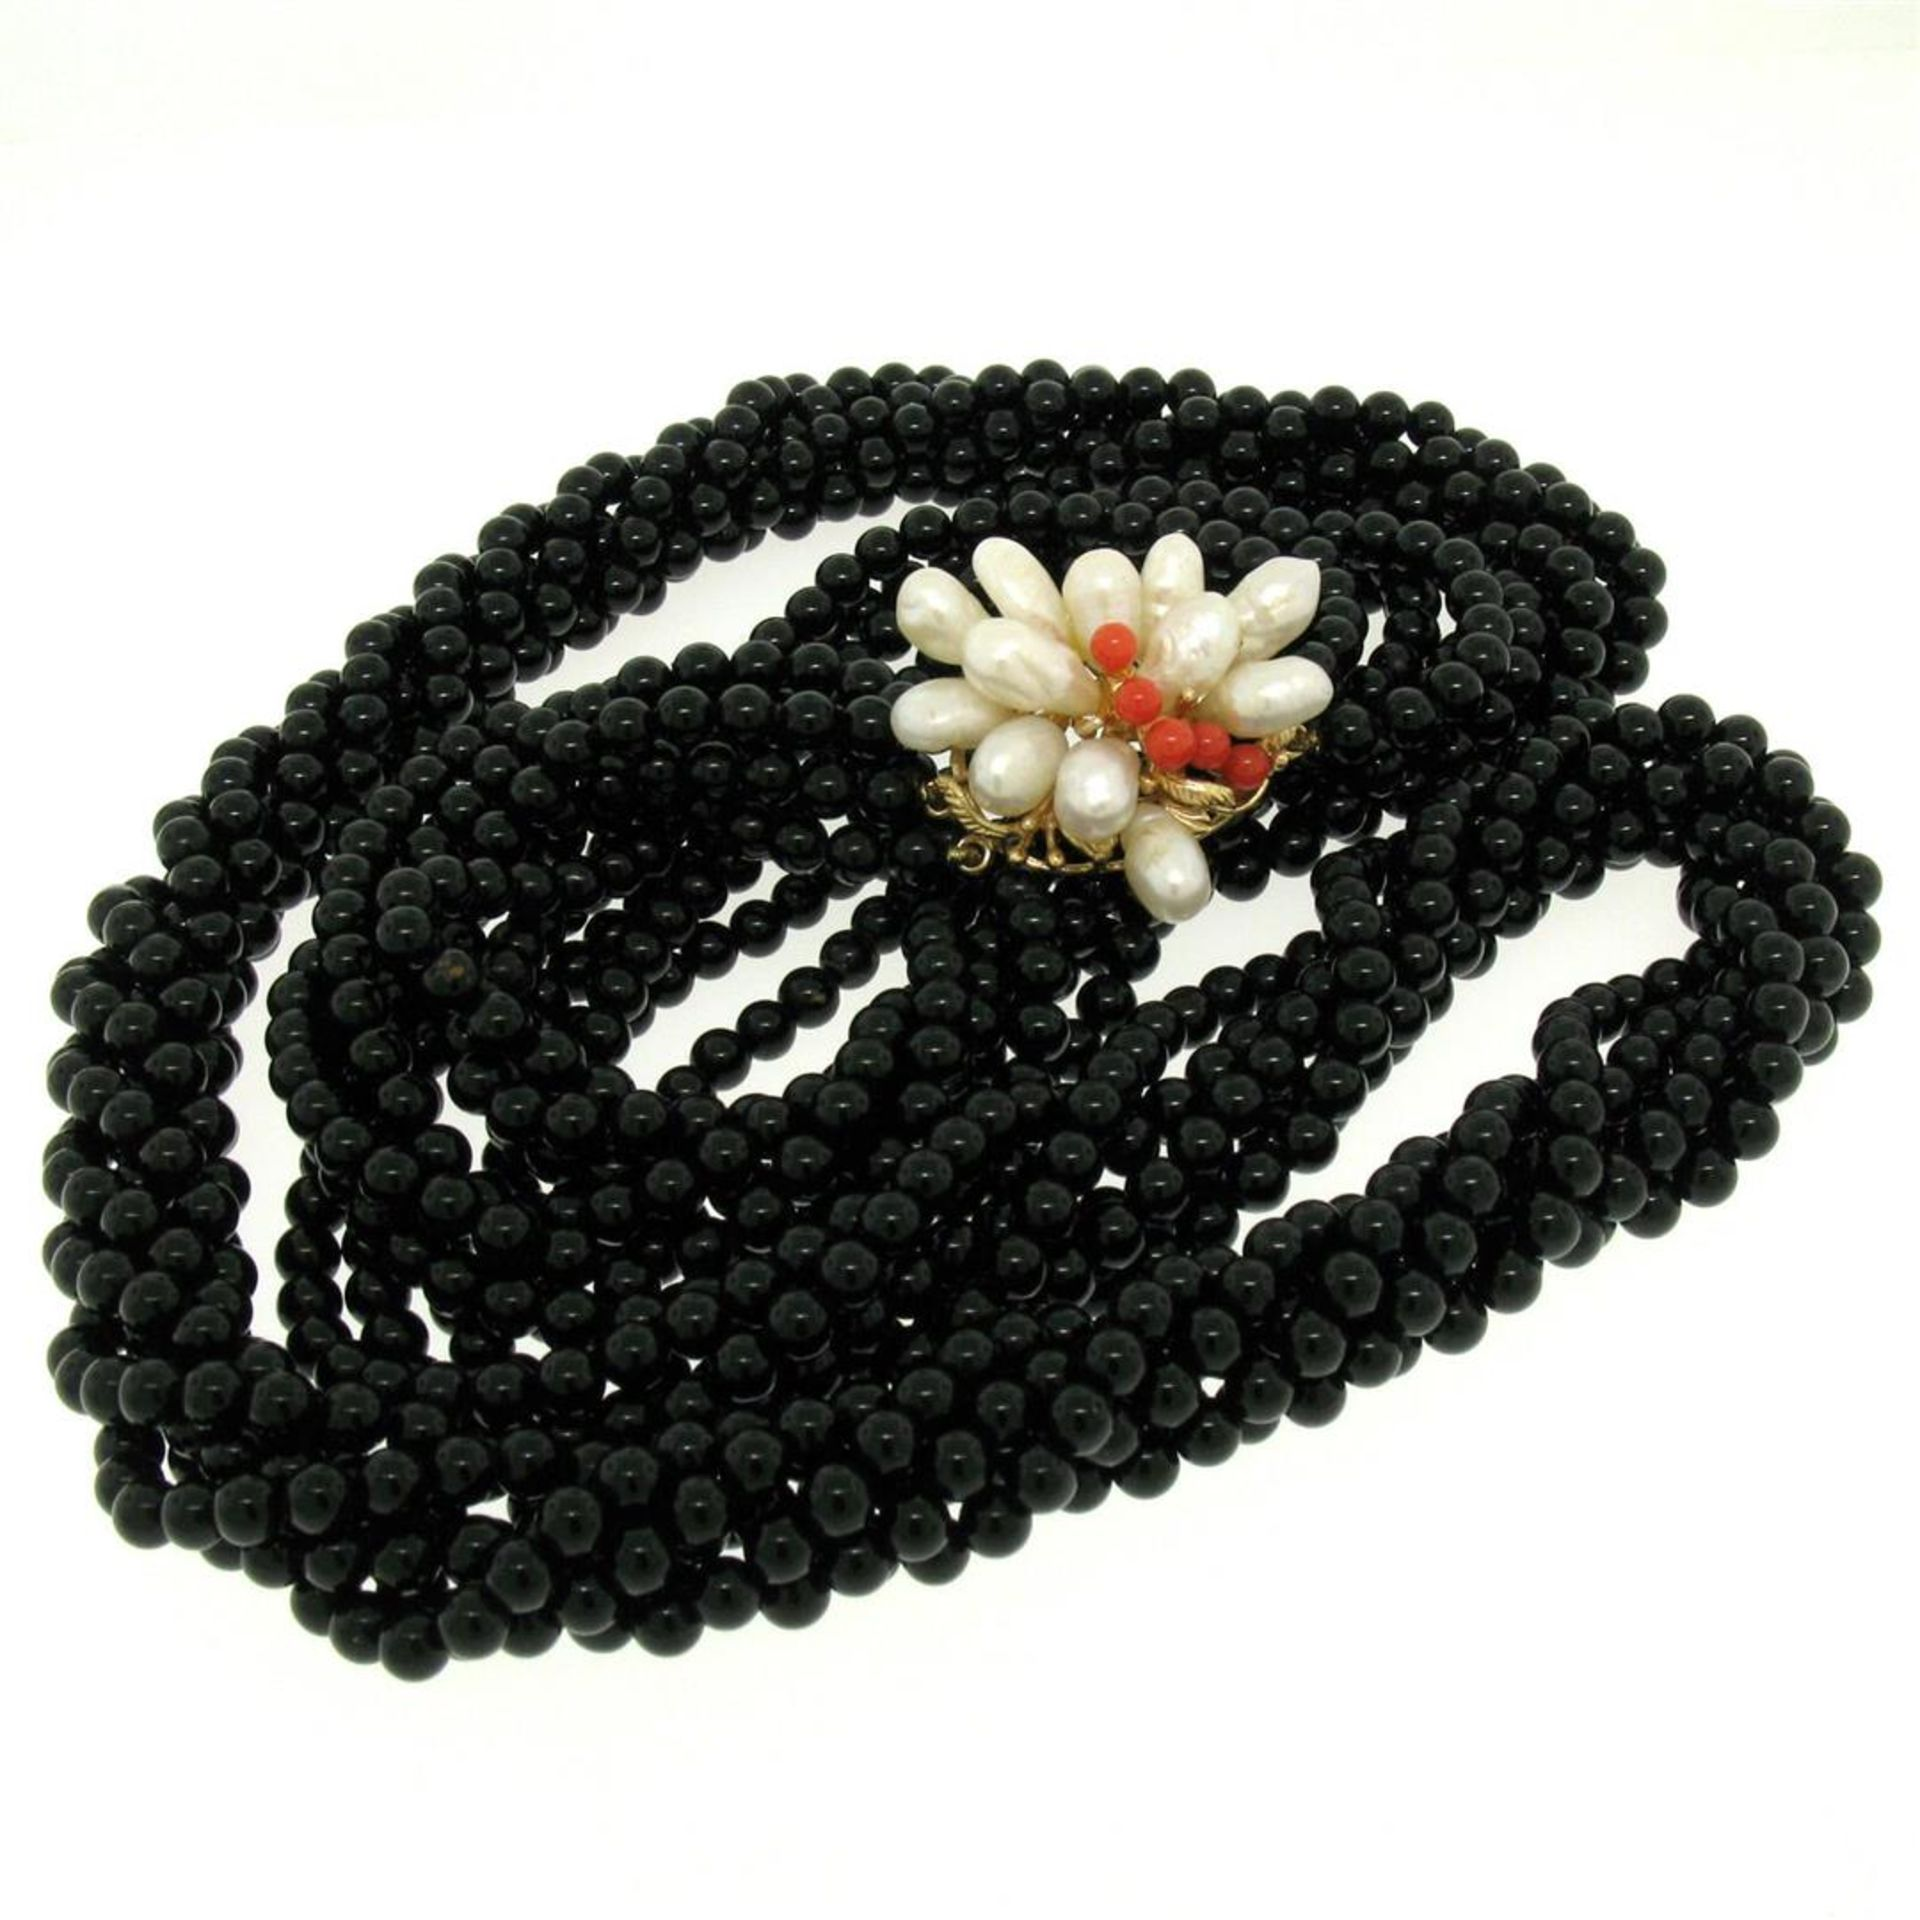 14k Gold Long Multi Strand Black Onyx Necklace w/ Freshwater Pearl & Coral Bead - Image 3 of 4